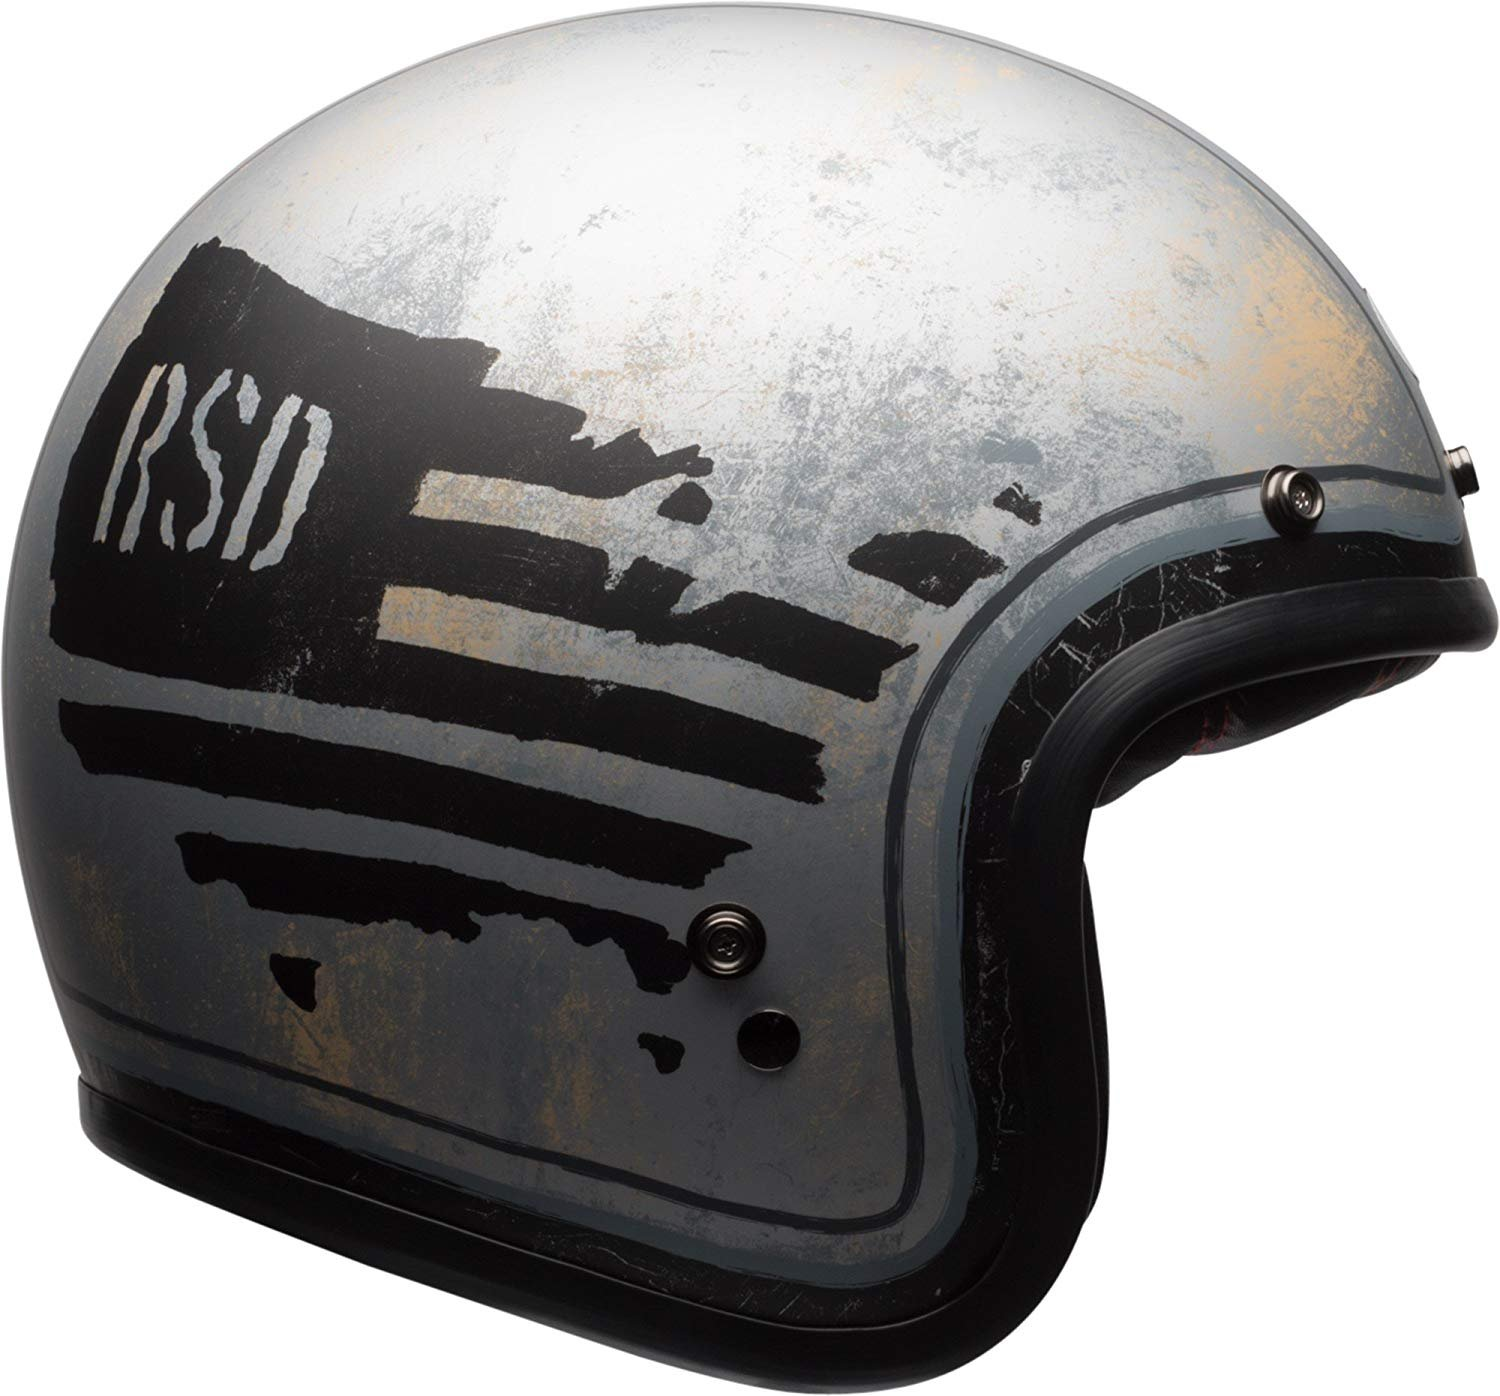 RSD WHO Gloss White//Red, Medium Bell Custom 500 Special Edition Open-Face Motorcycle Helmet